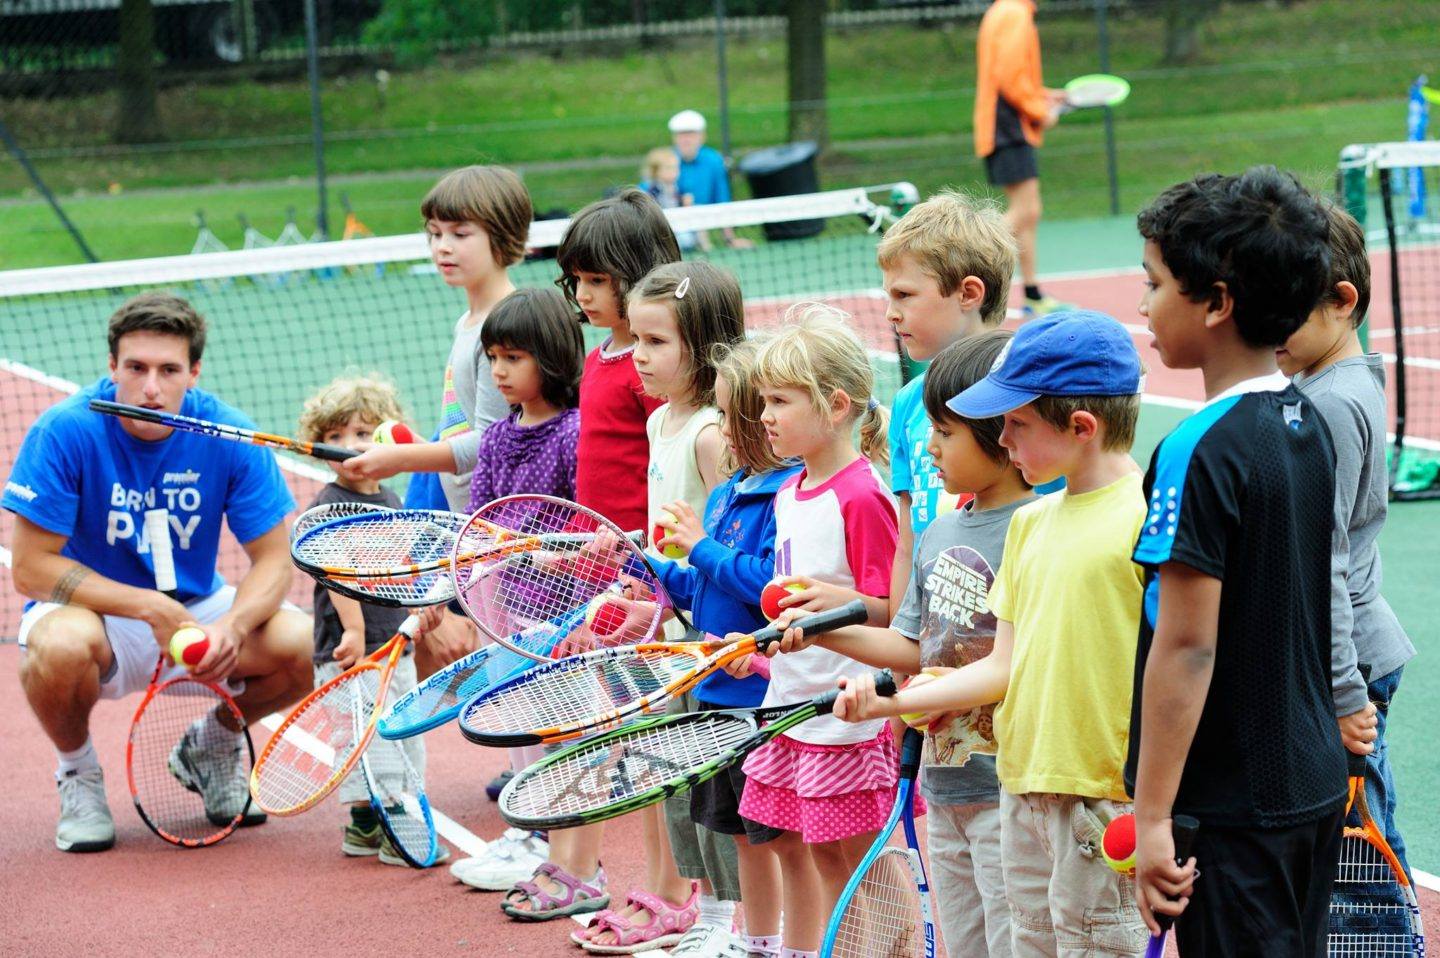 The Great British Tennis Weekend – get involved! #GBTW